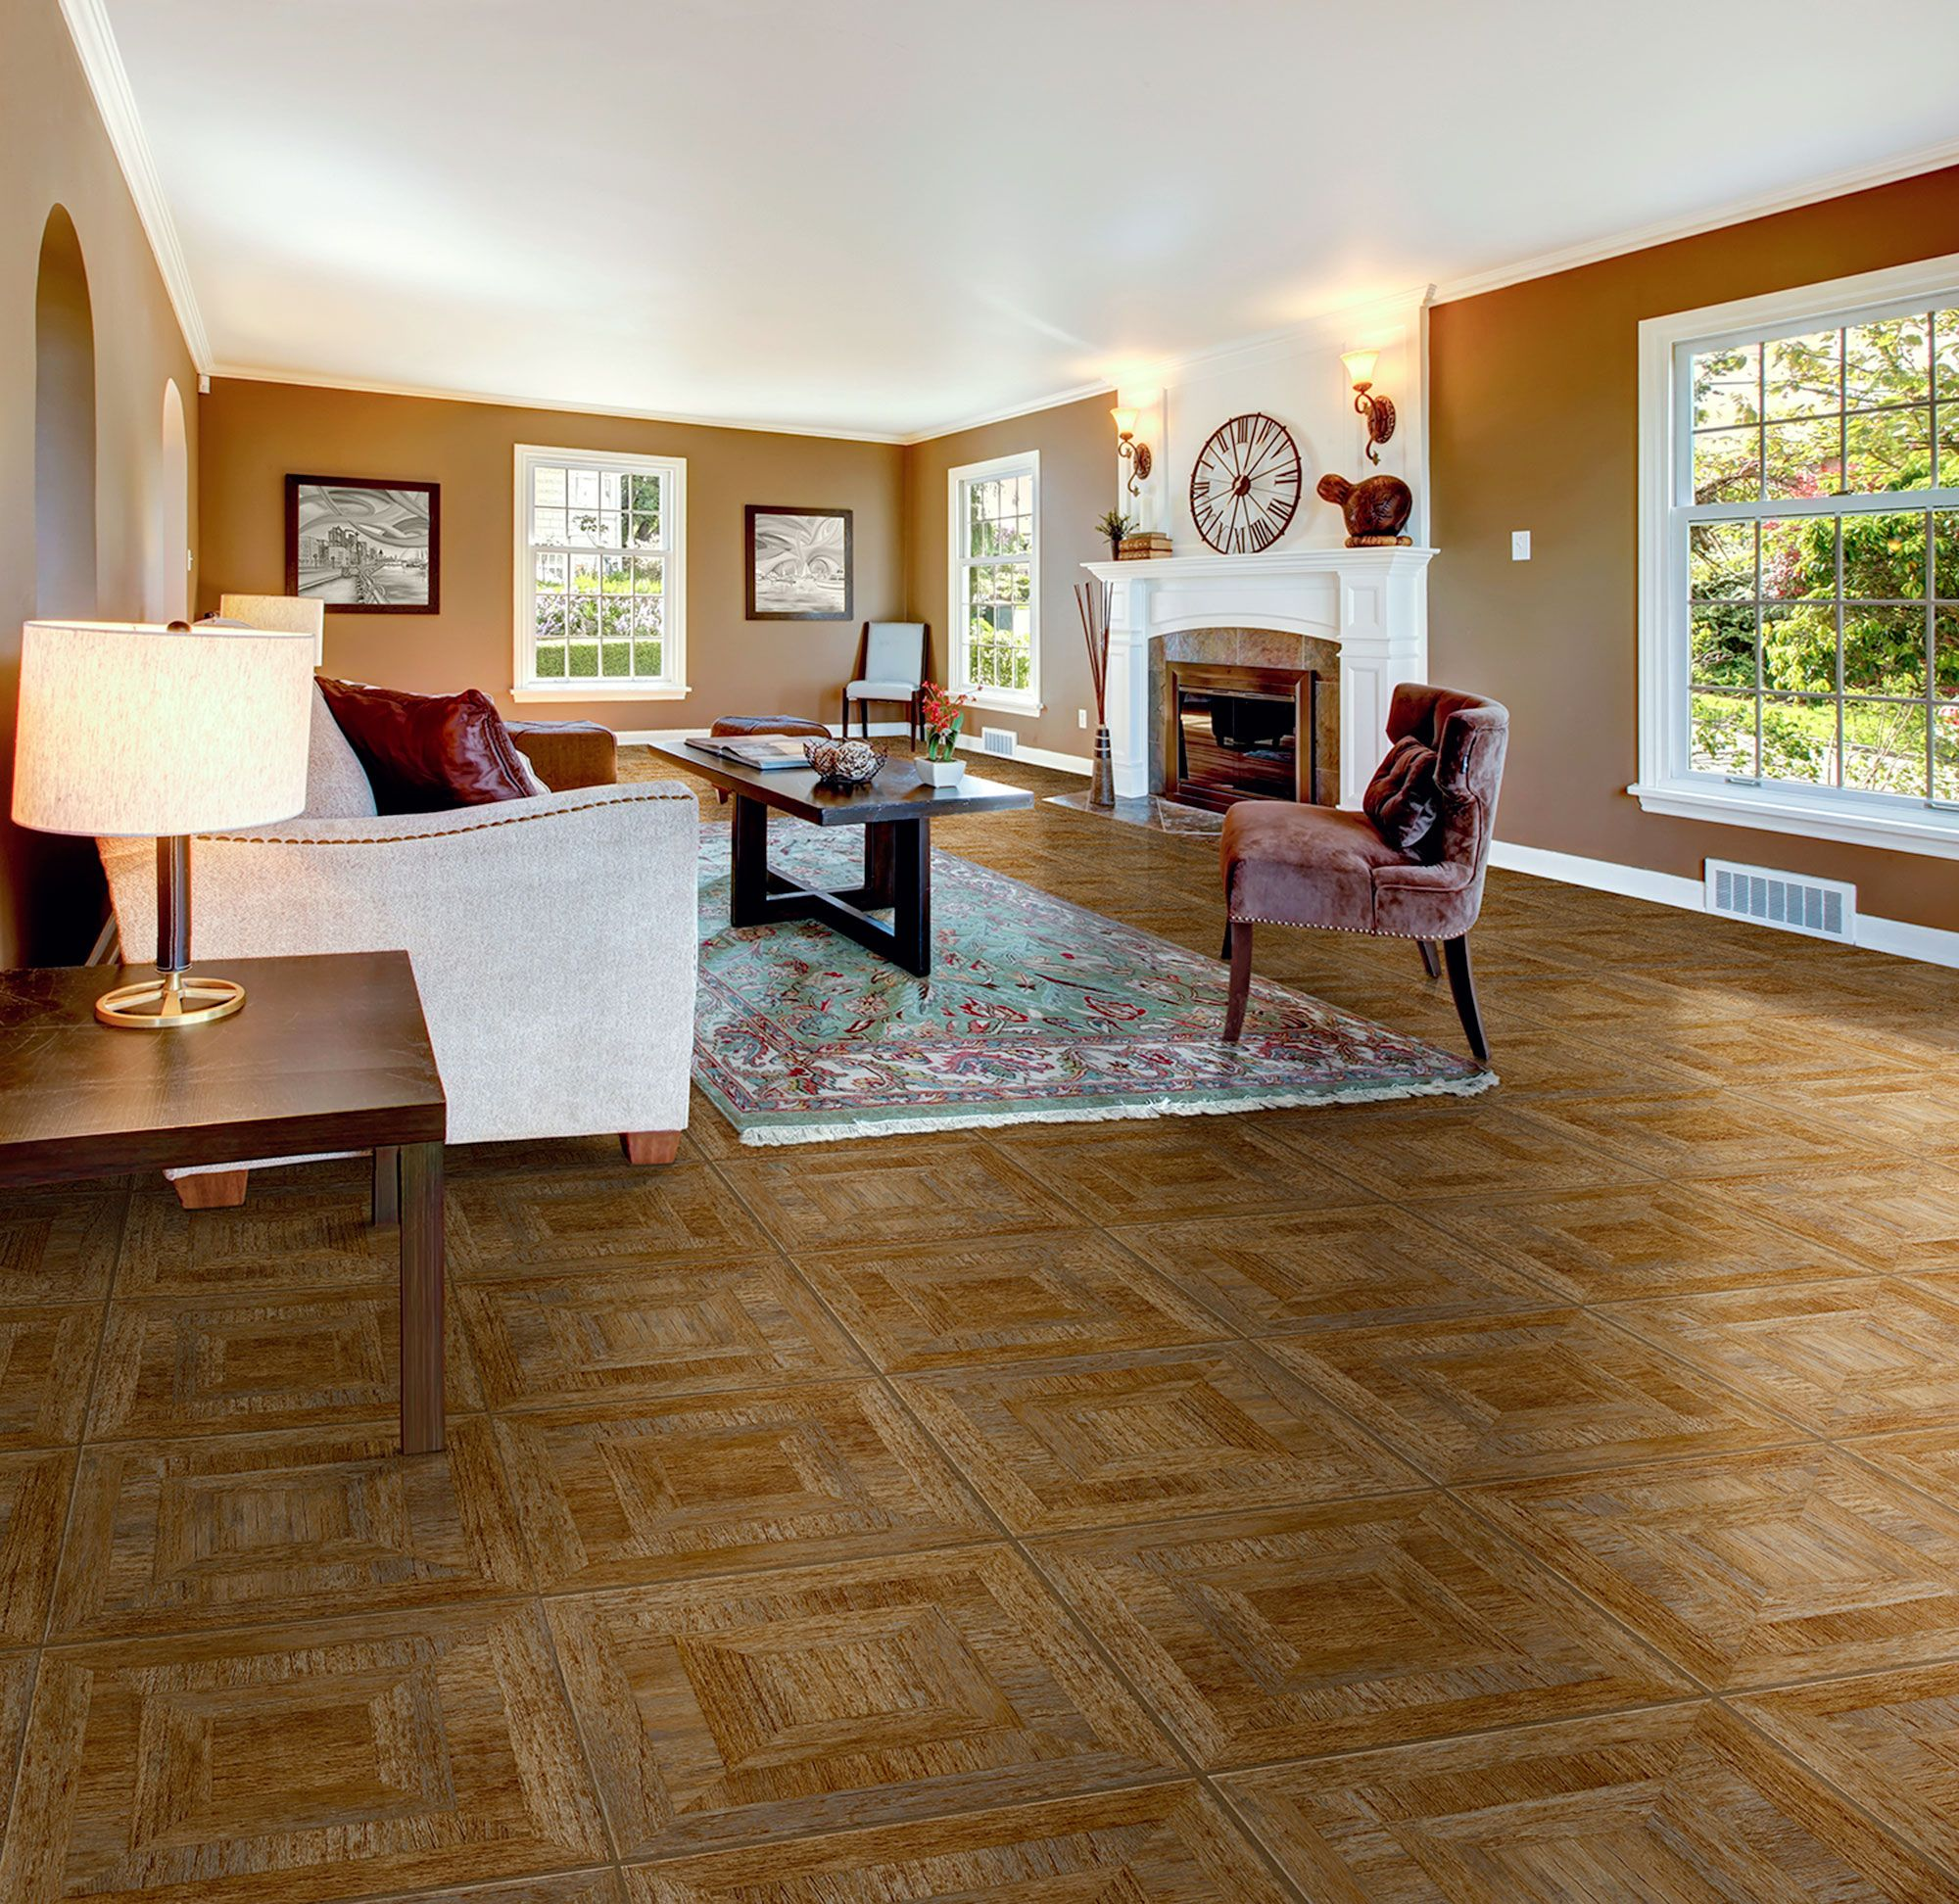 Woodstock groovy congoleum duraceramic luxury vinyl flooring with the look of real ceramic luxury vinyl tile has become extremely popular see all the latest lvt fashions at our chicago flooring store locations doublecrazyfo Images